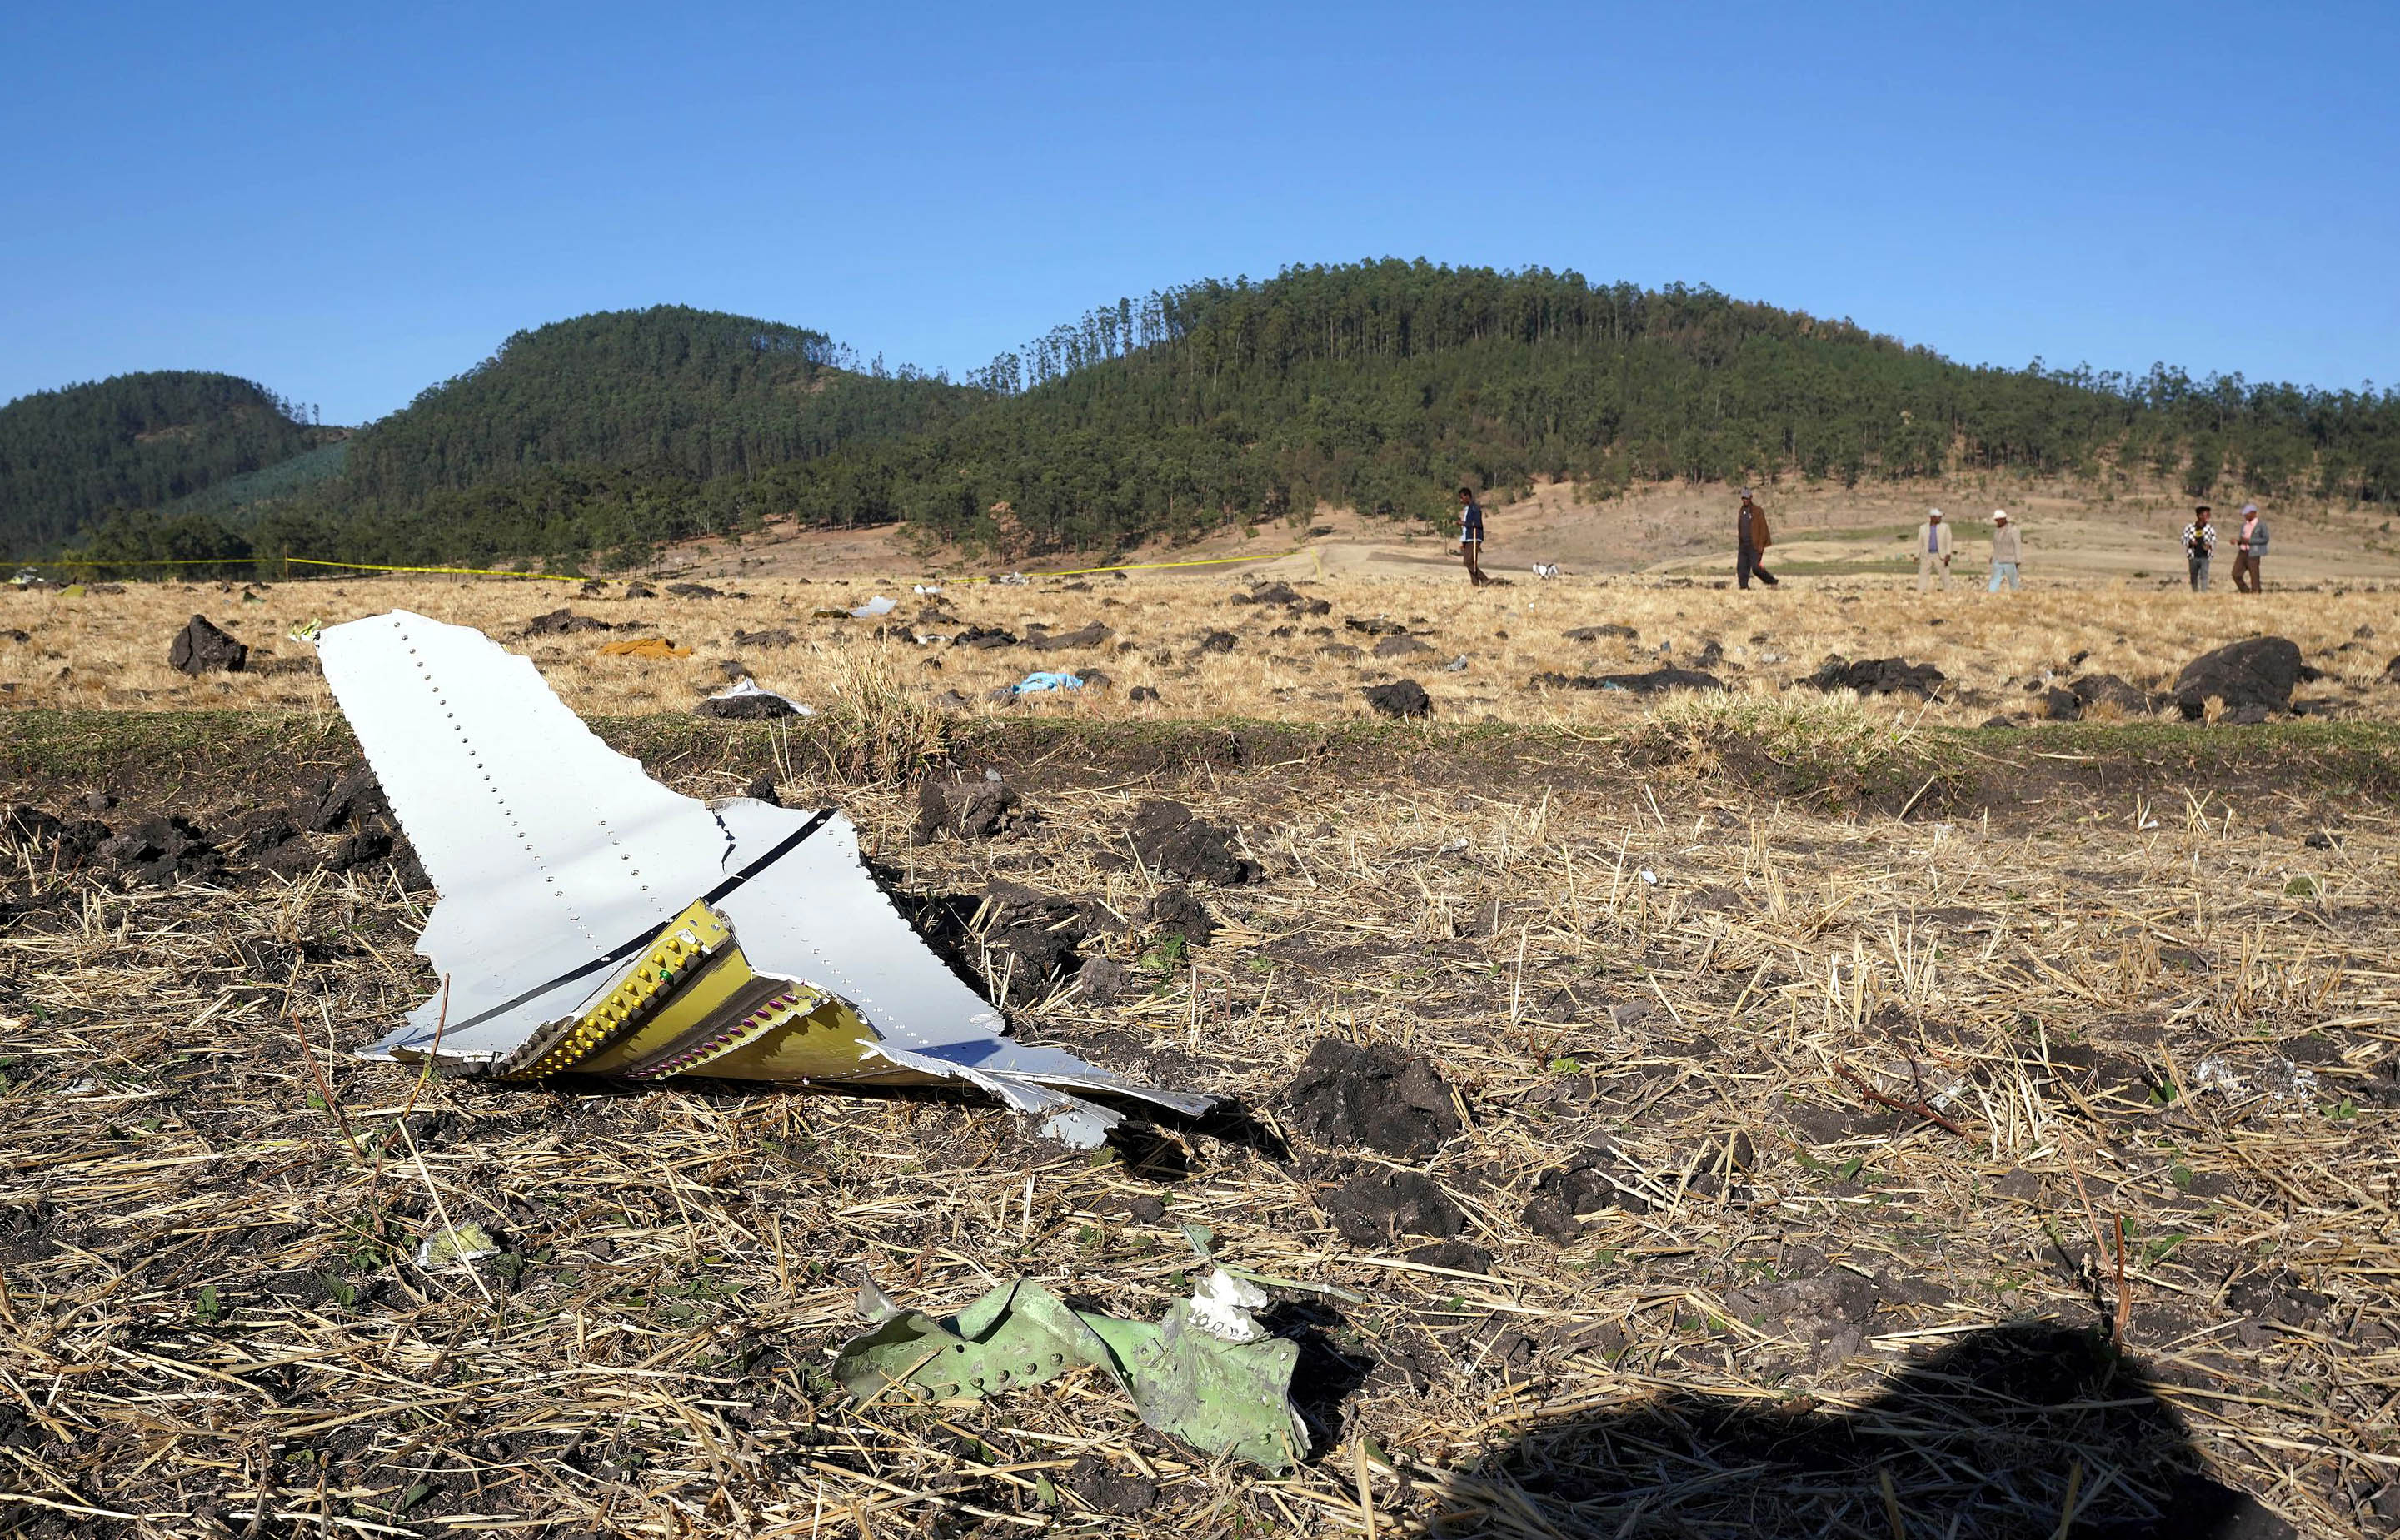 A piece of the fuselage of ET Flight 302 can be seen in the foreground as local residents collect debris at the scene where Ethiopian Airlines Flight 302 crashed in a wheat field just outside the town of Bishoftu, 62 kilometers southeast of Addis Ababa on March 10, 2019, in Addis Ababa, Ethiopia. (Getty)